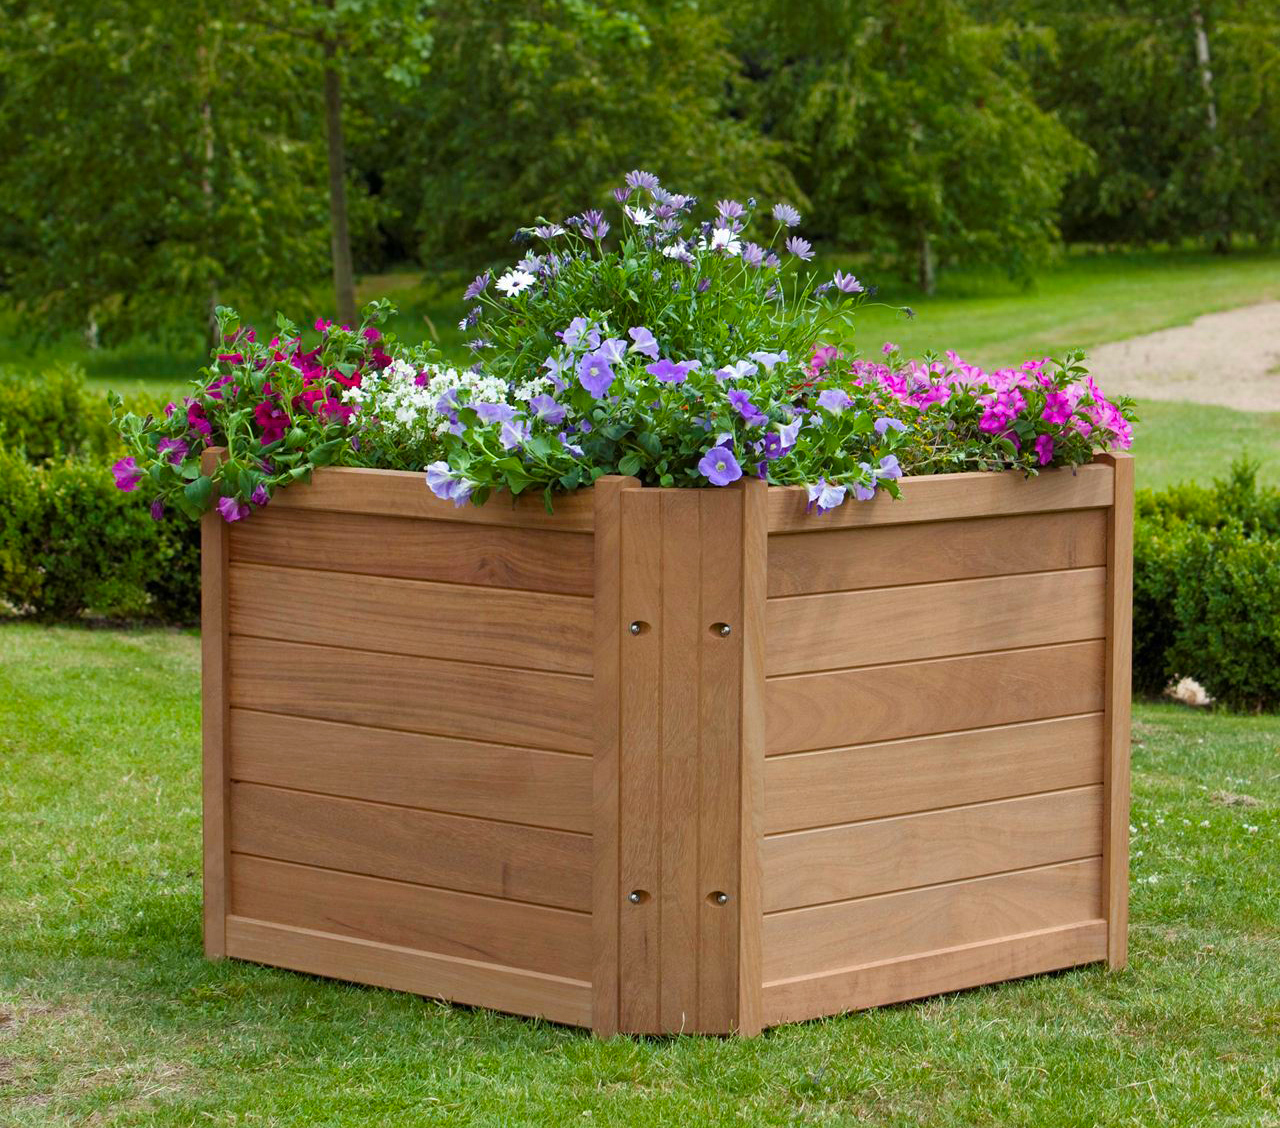 Newforest Planters -